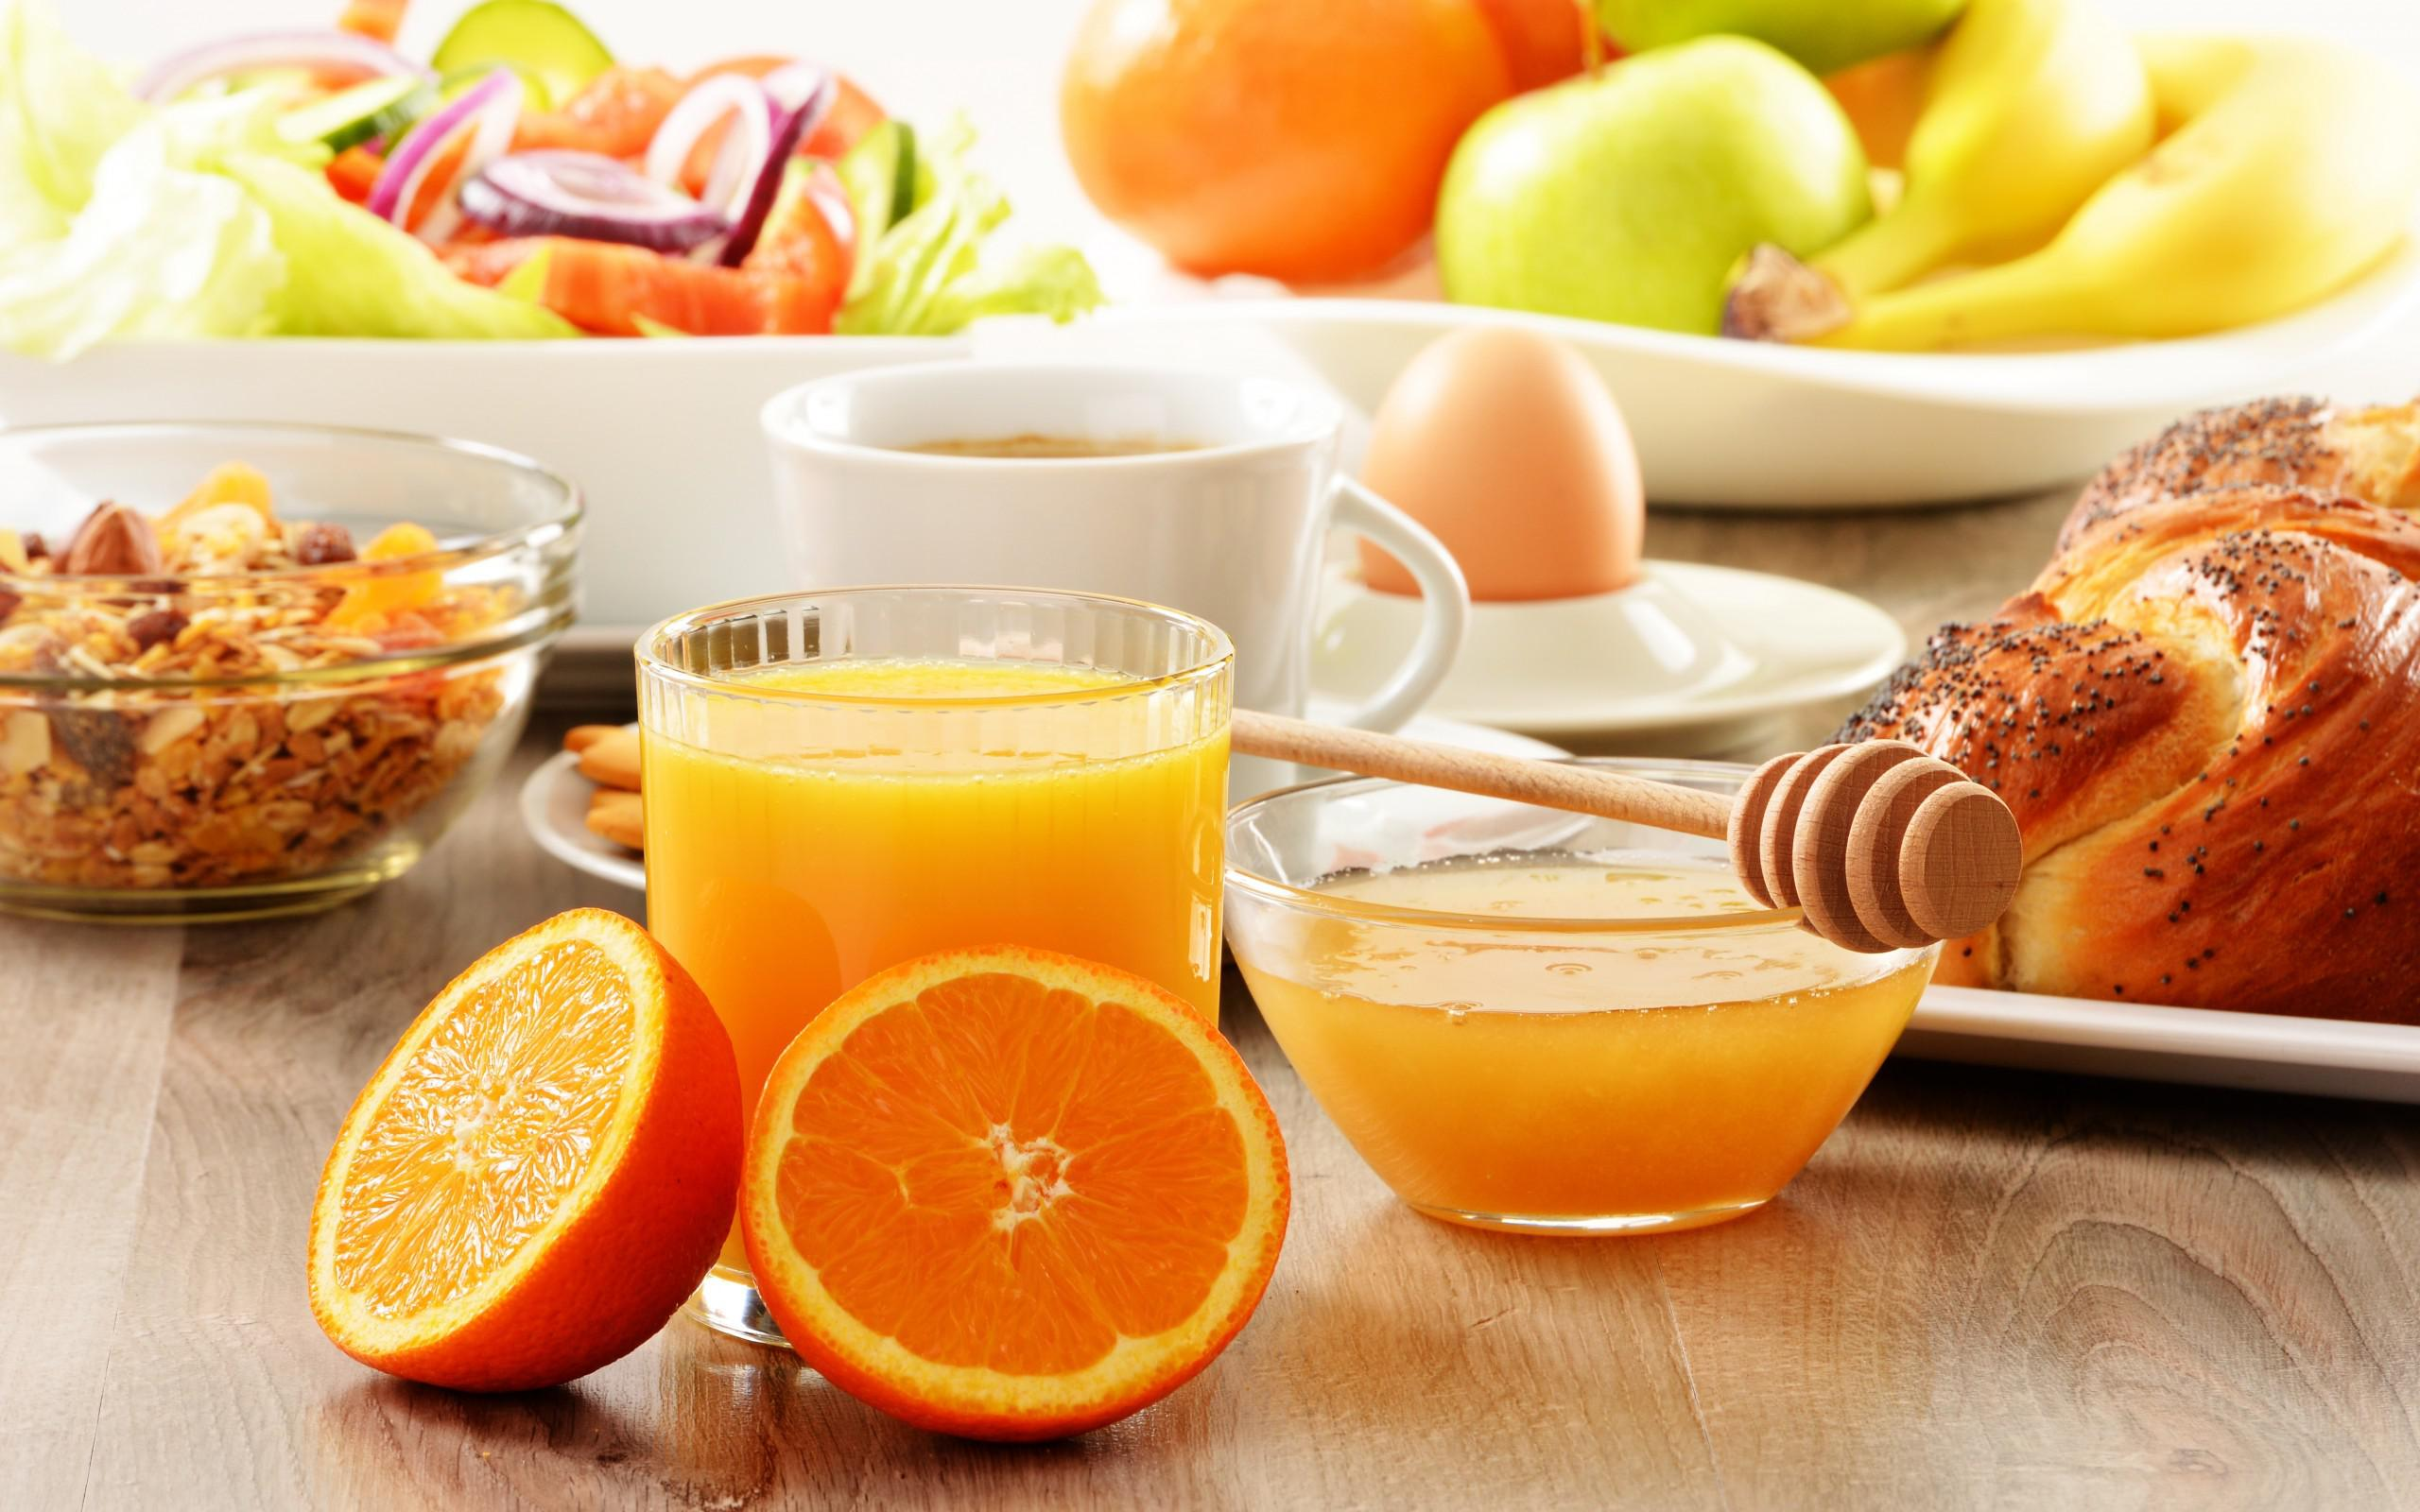 Orange Juice for Breakfast  7456.6 Kb